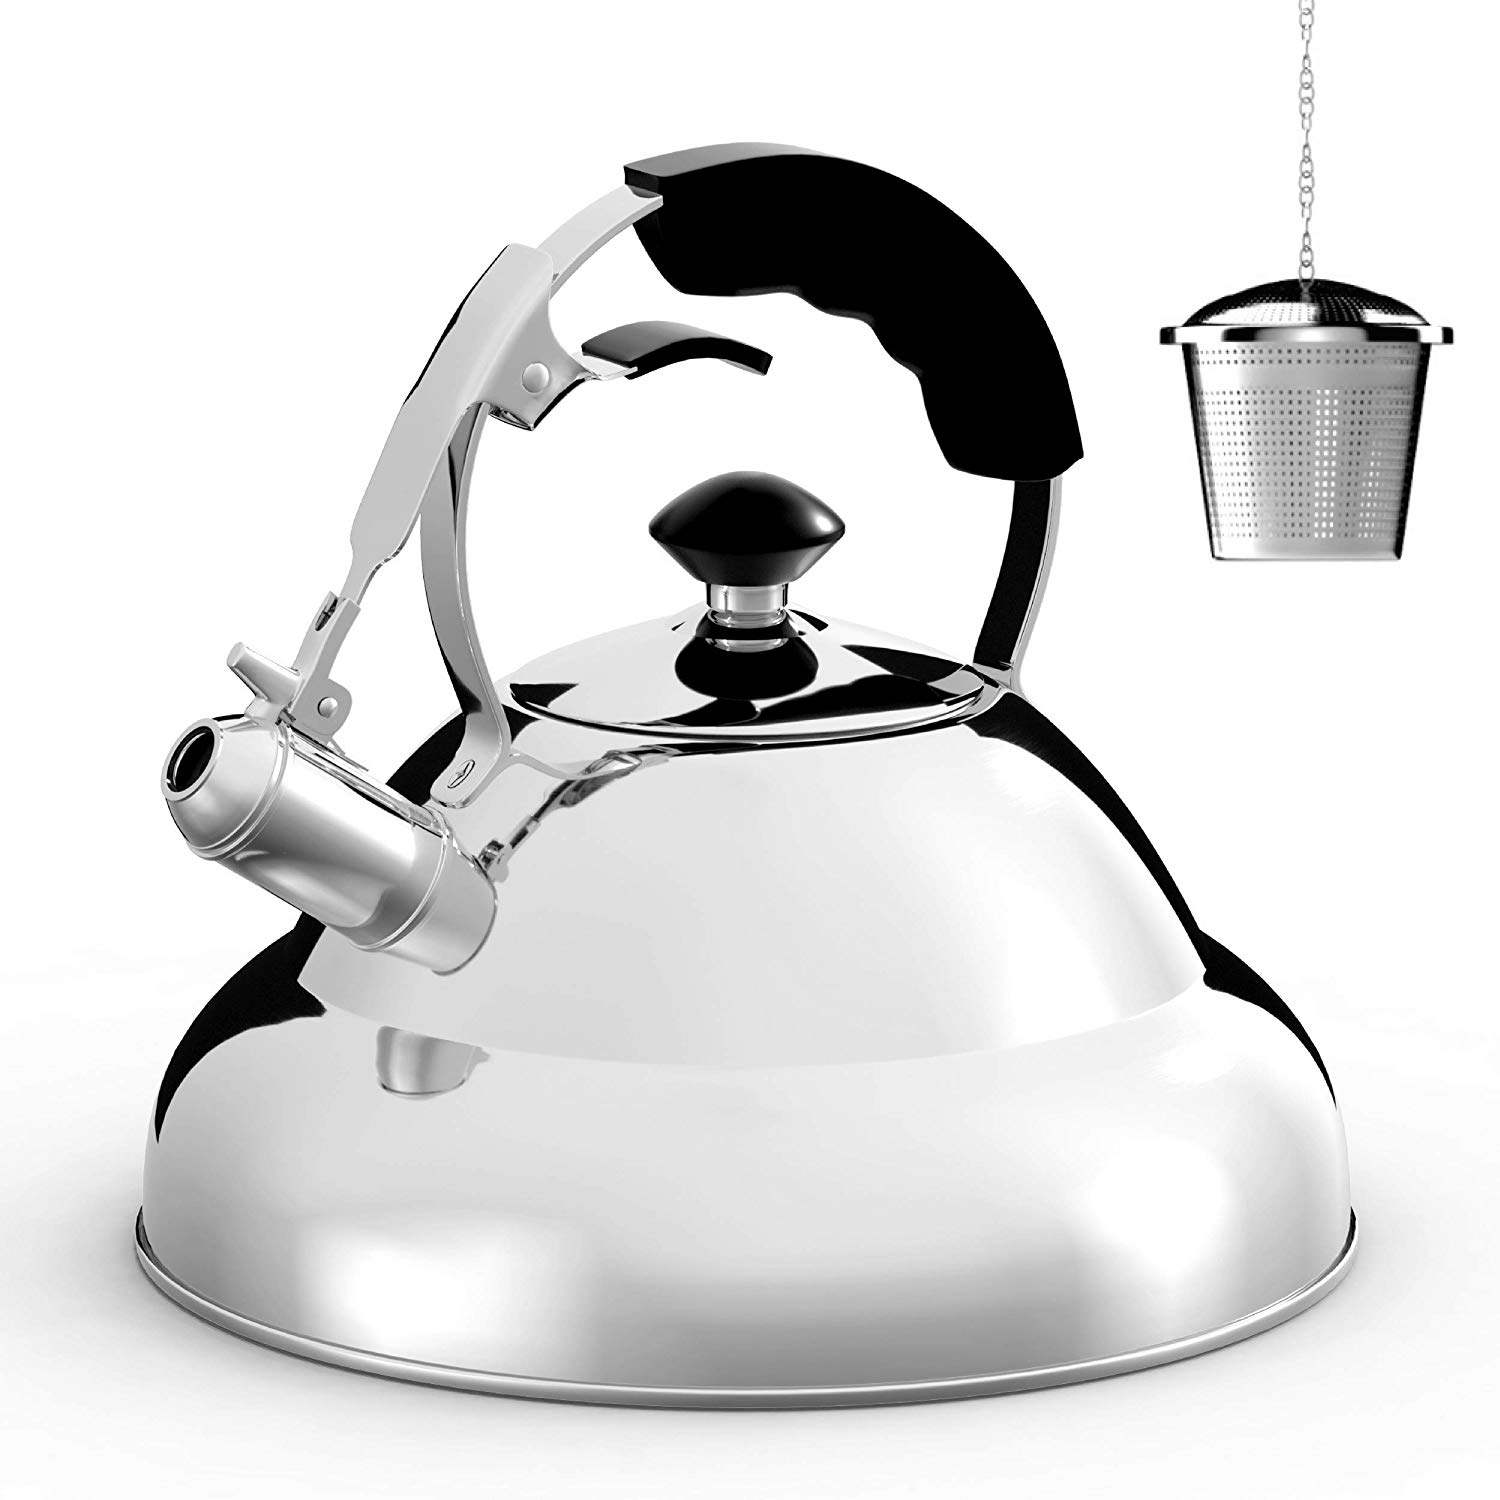 Surgical whistling best tea kettle for glass cooktop